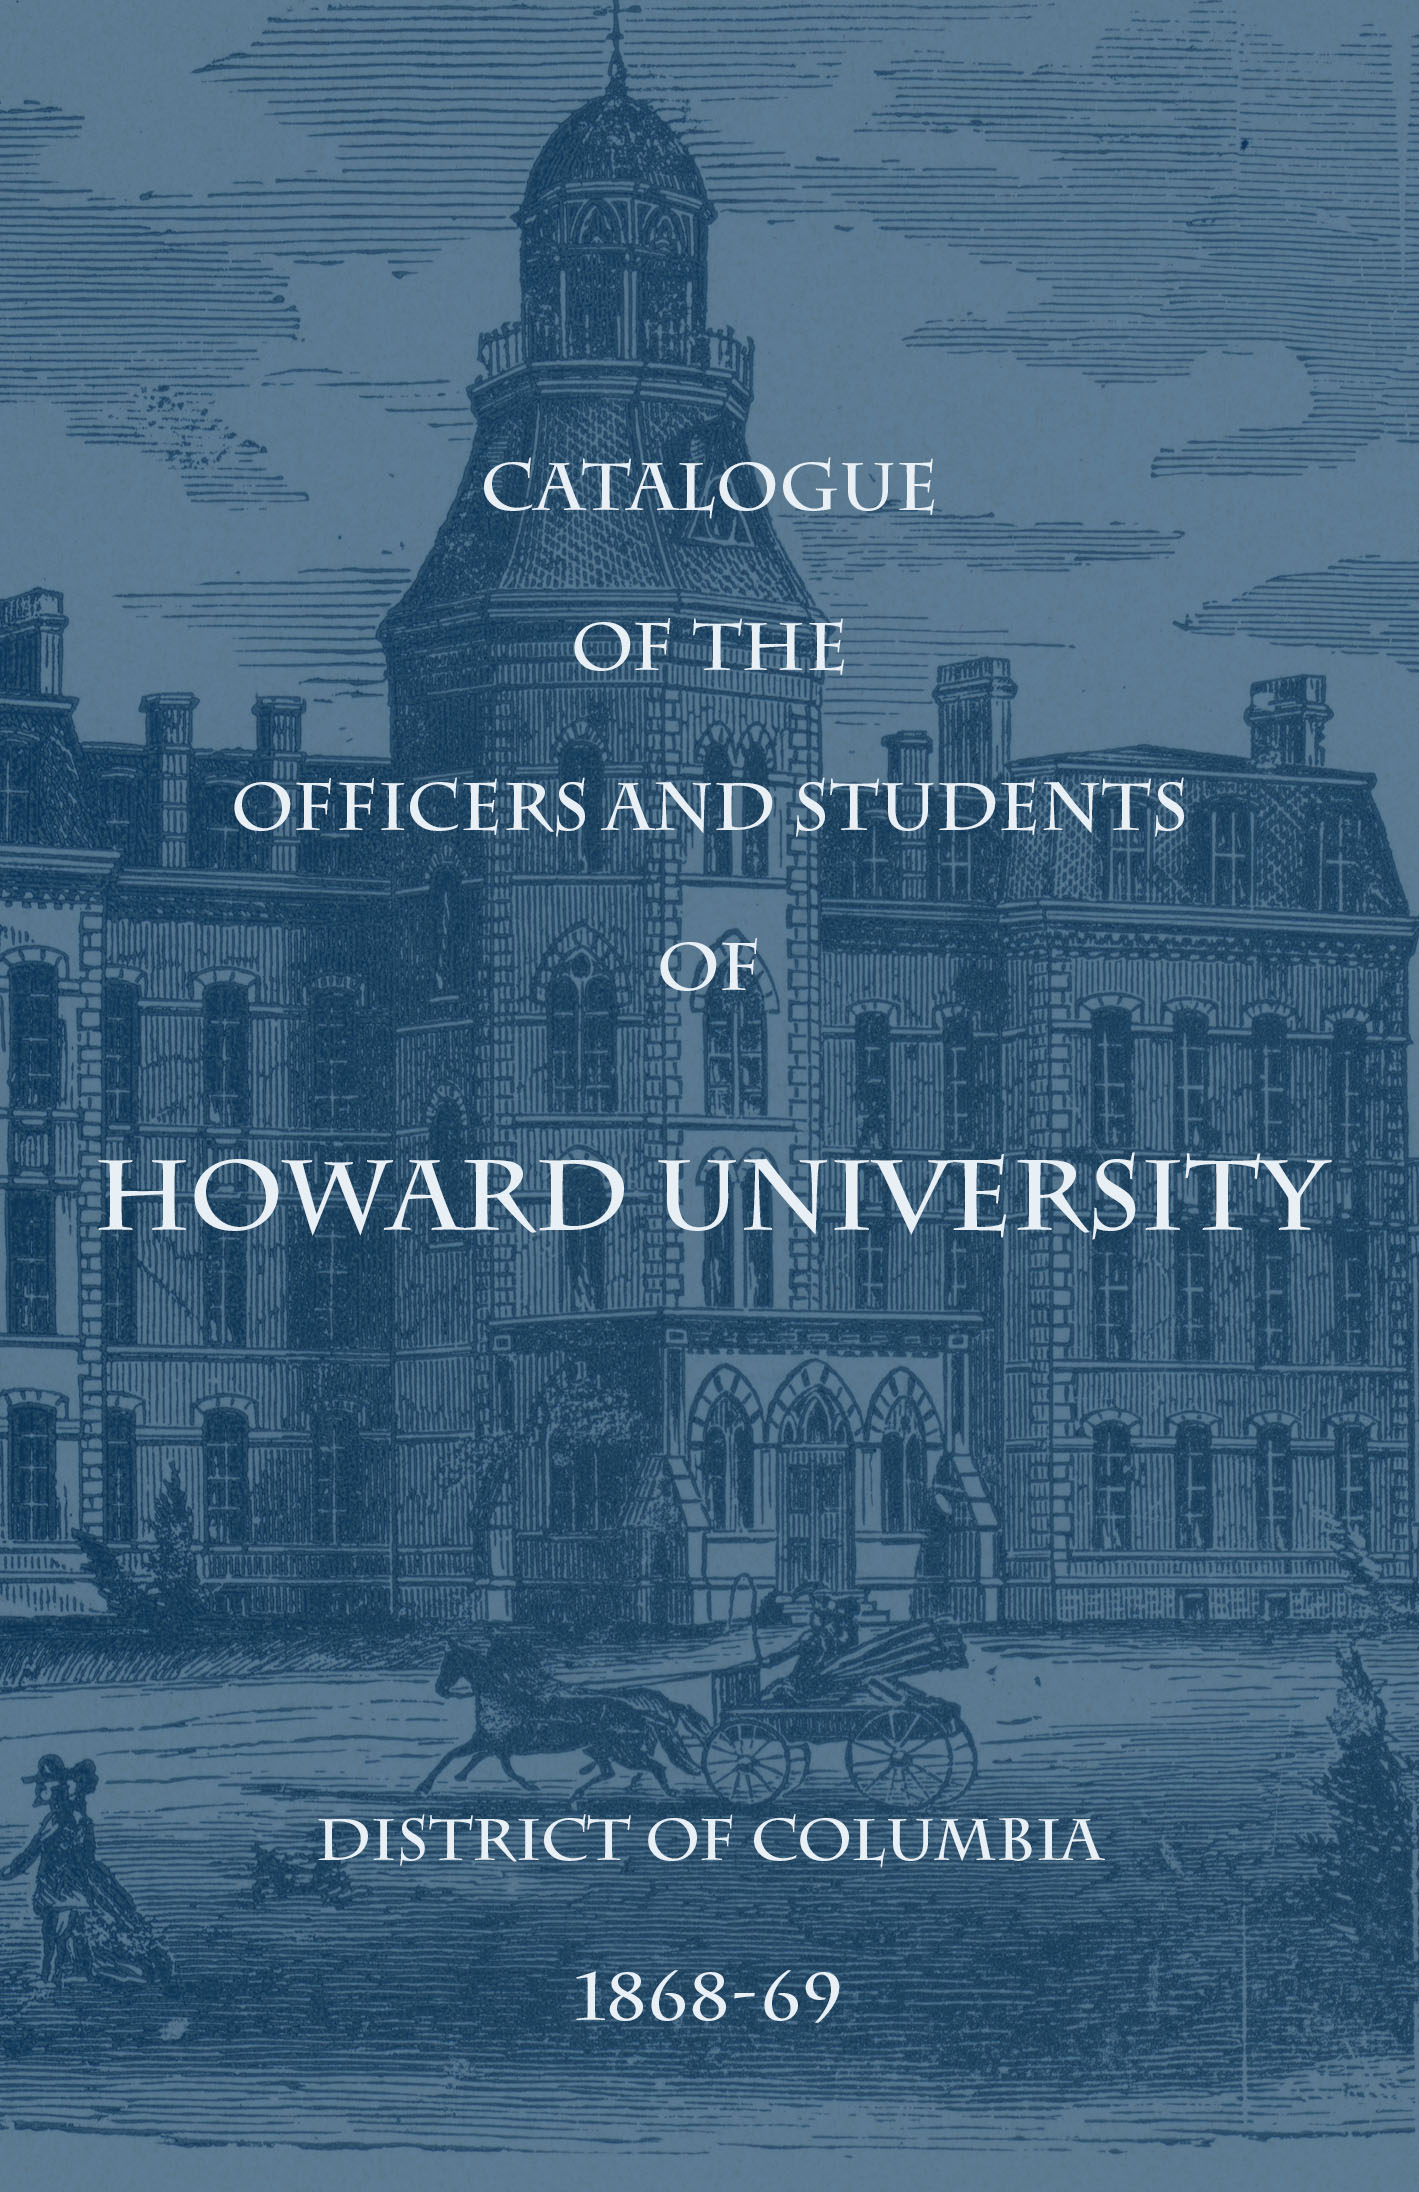 Howard University Catalogs